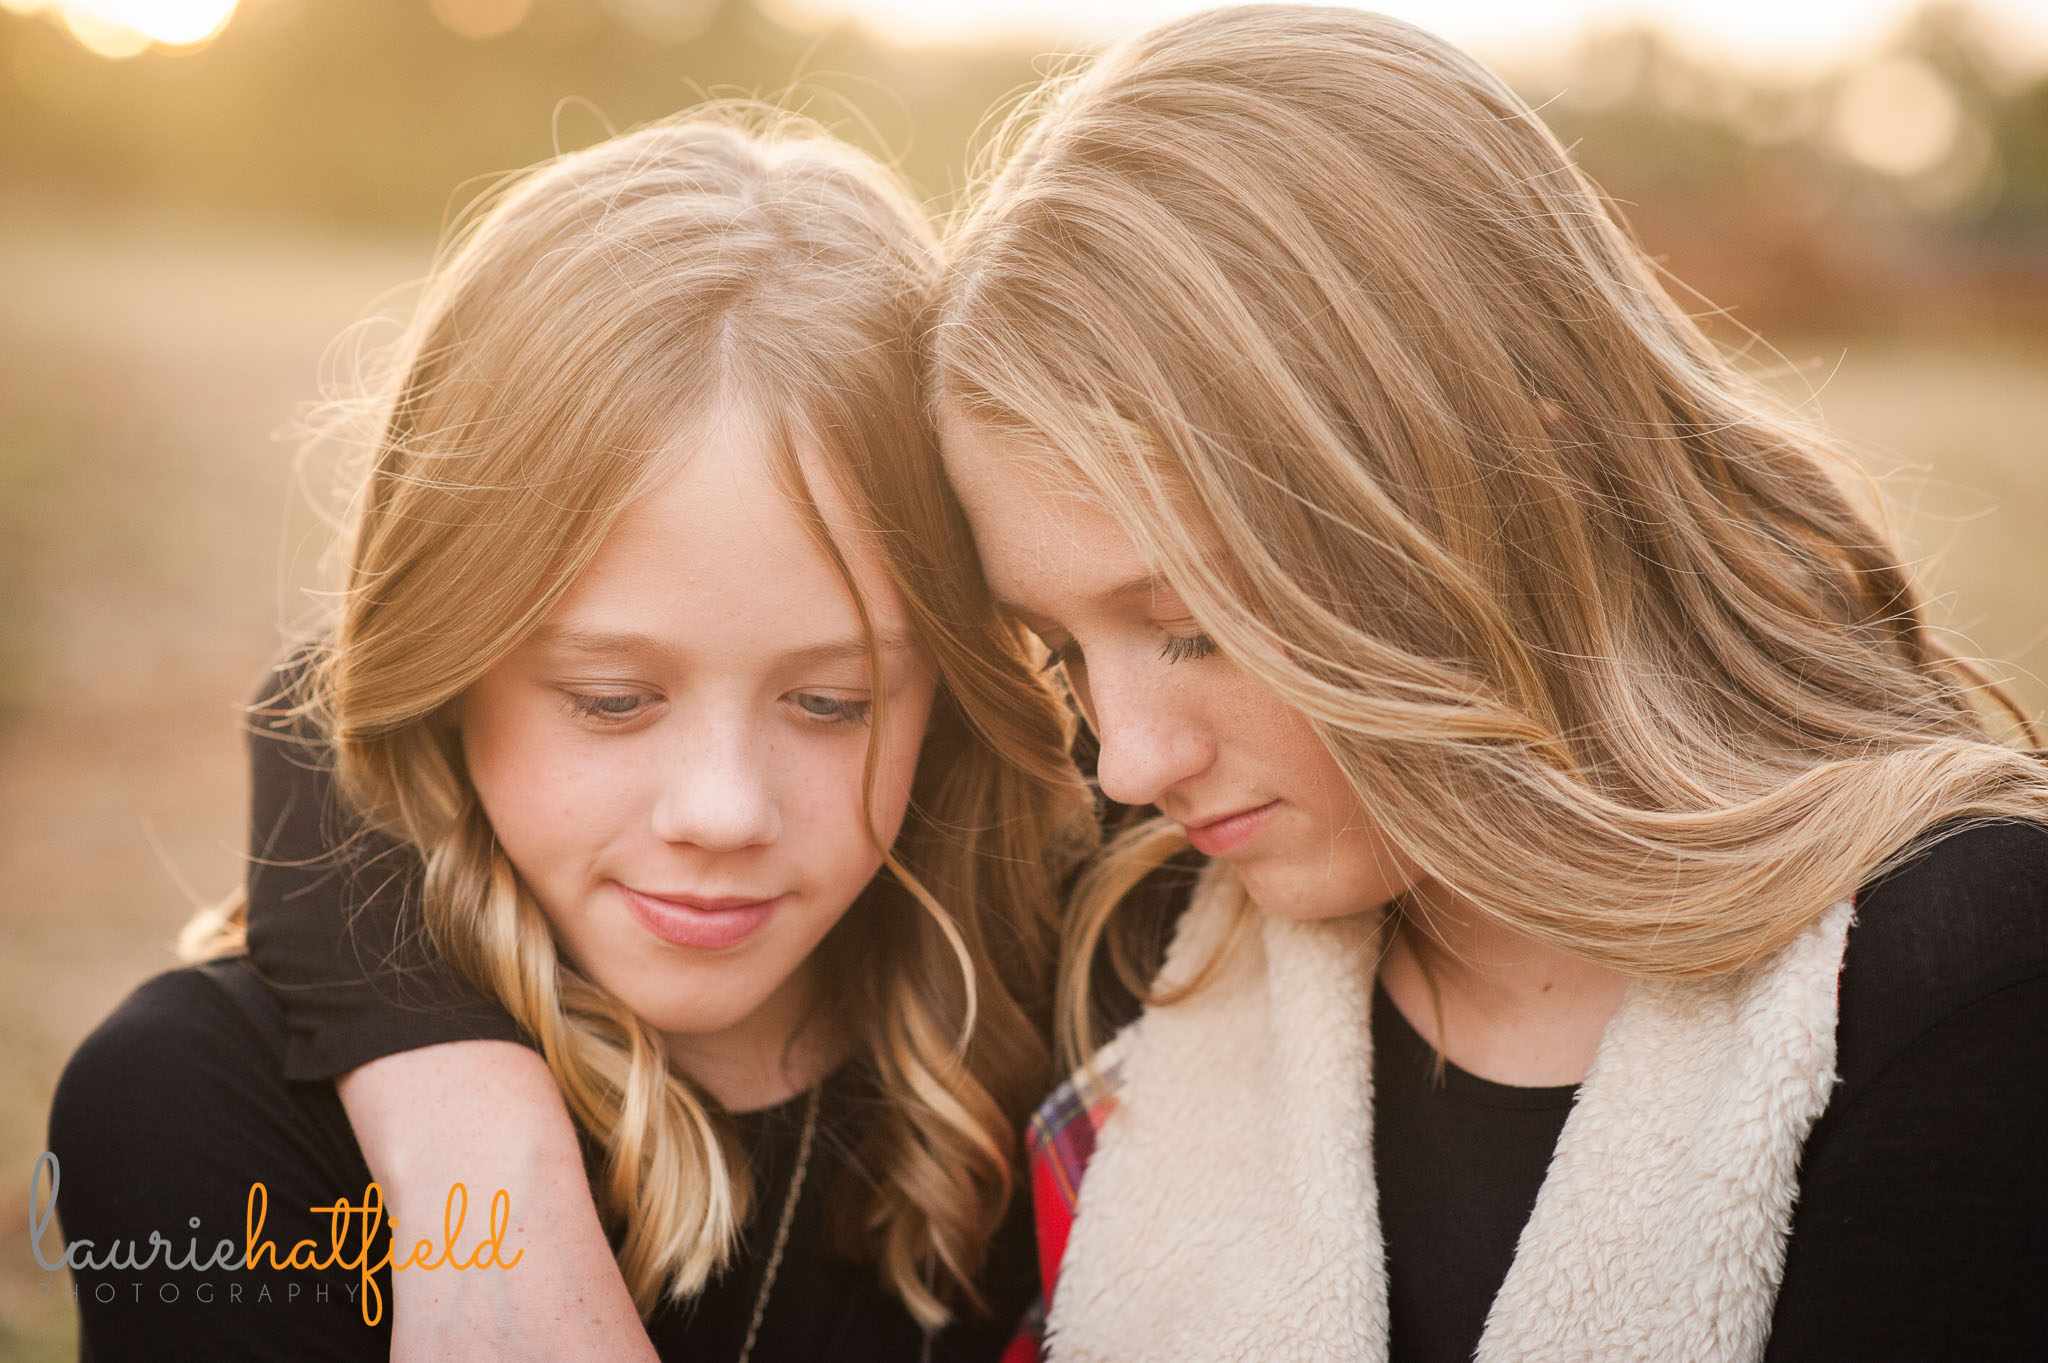 sisters with arms around each other | Mobile family photographer